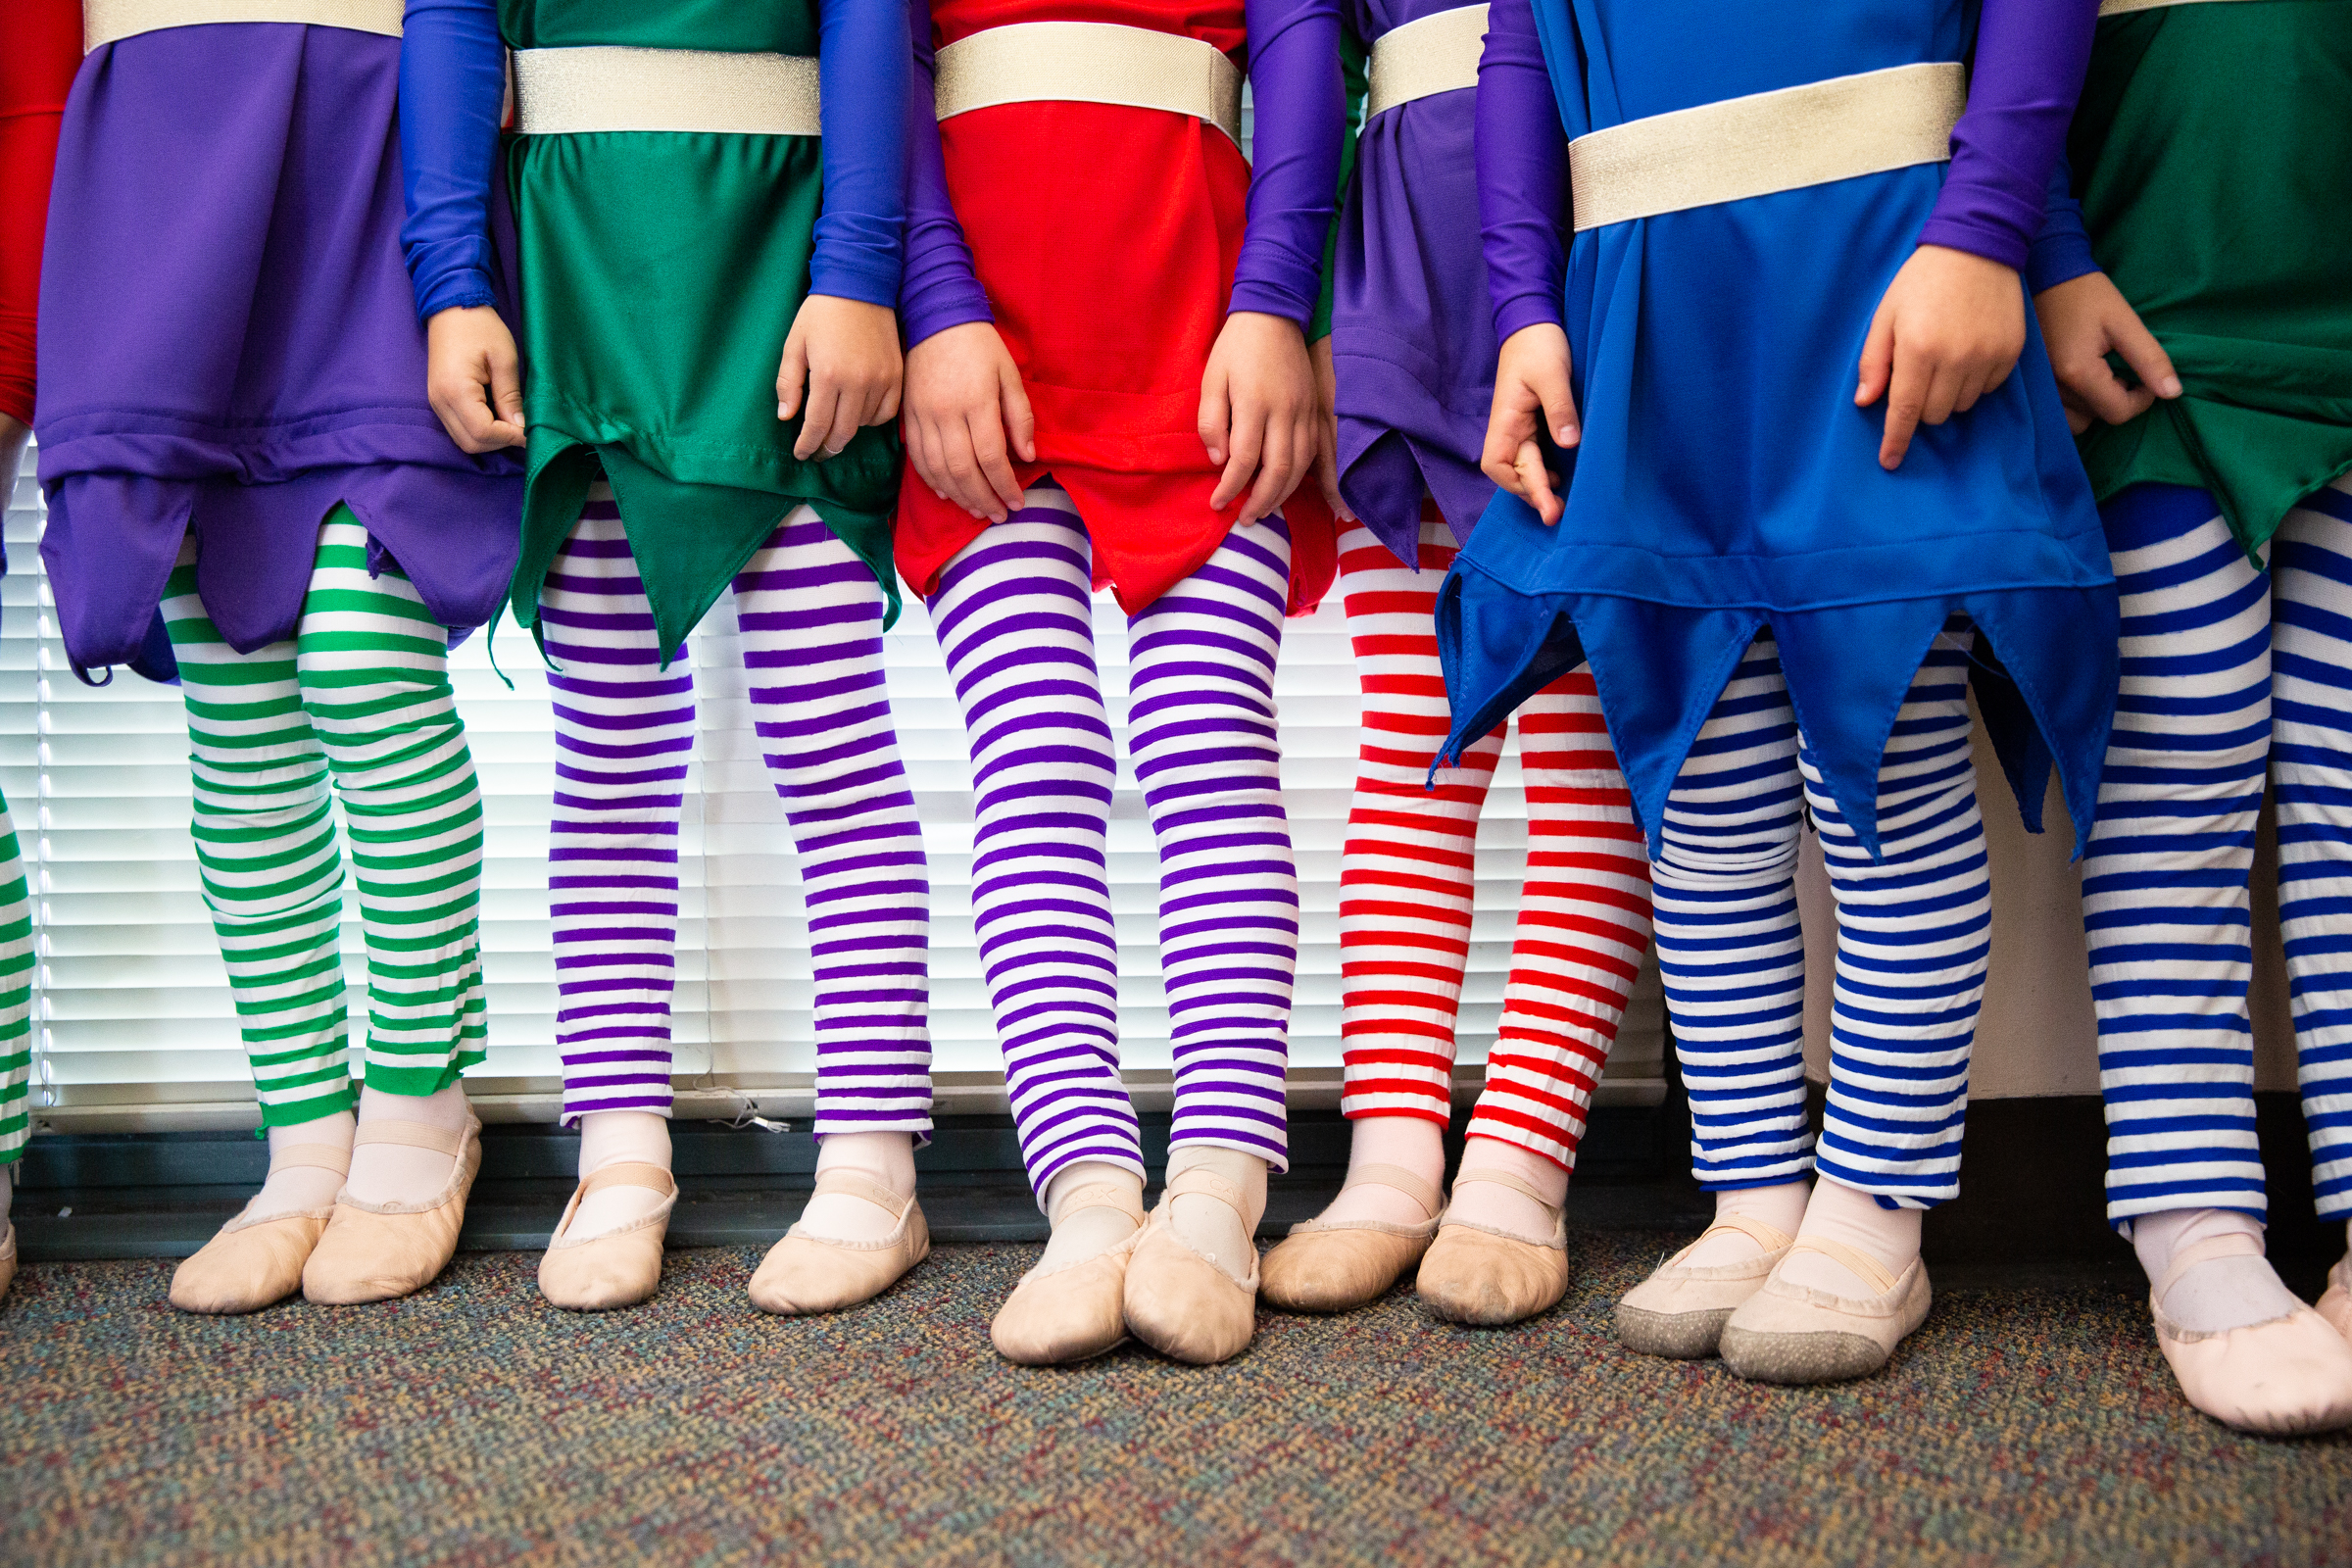 """Little elves, ages 5 to 12, line up to go onstage during Western Ballet's production of """"The Nutcracker"""" at the Mountain View Center for the Performing Arts on Dec. 2, 2018."""